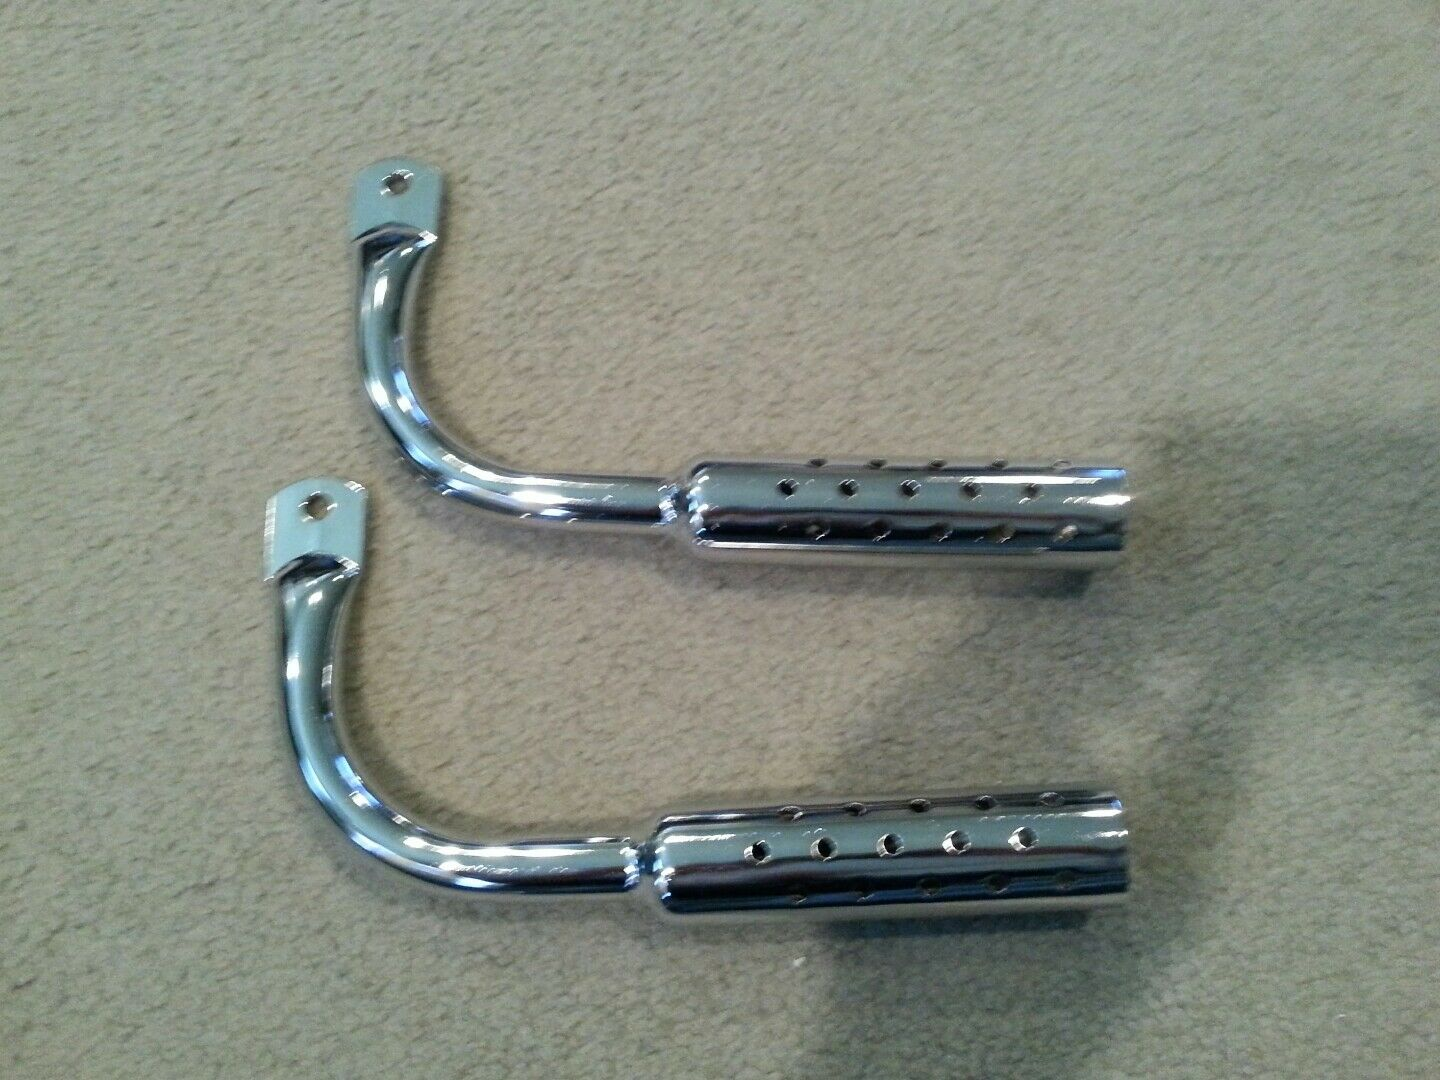 NEW  CHROME  GANGSTER MUFFLERS BEACH  CRUISER LOWRIDER BICYCLES  clients first reputation first